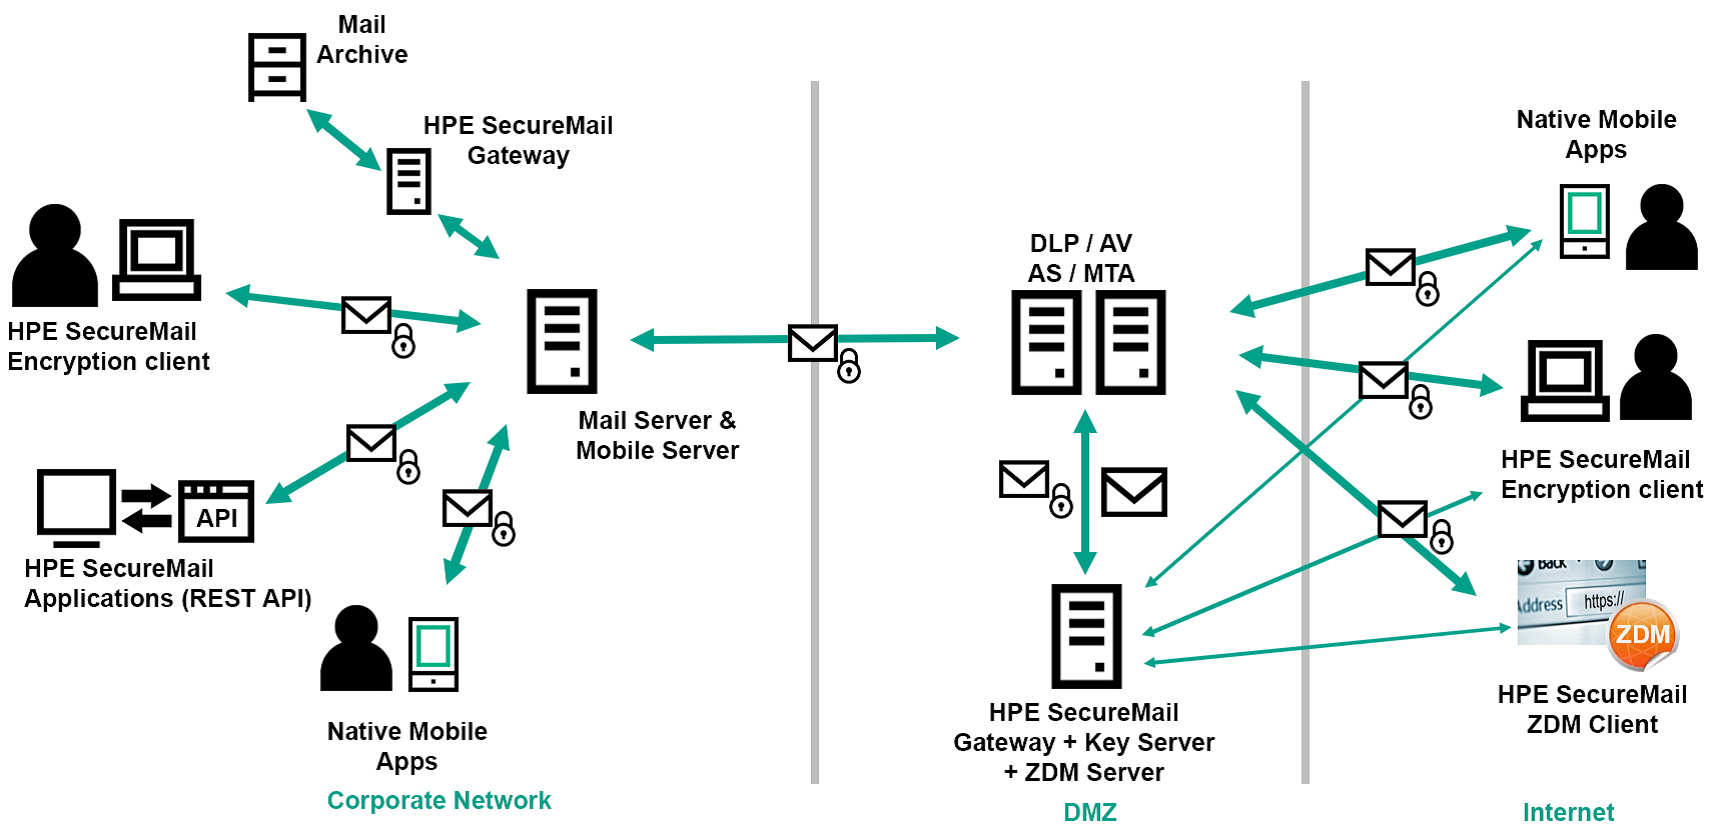 Hpe securemail bcc services integrated with your existing email workflows for a simple user experience pooptronica